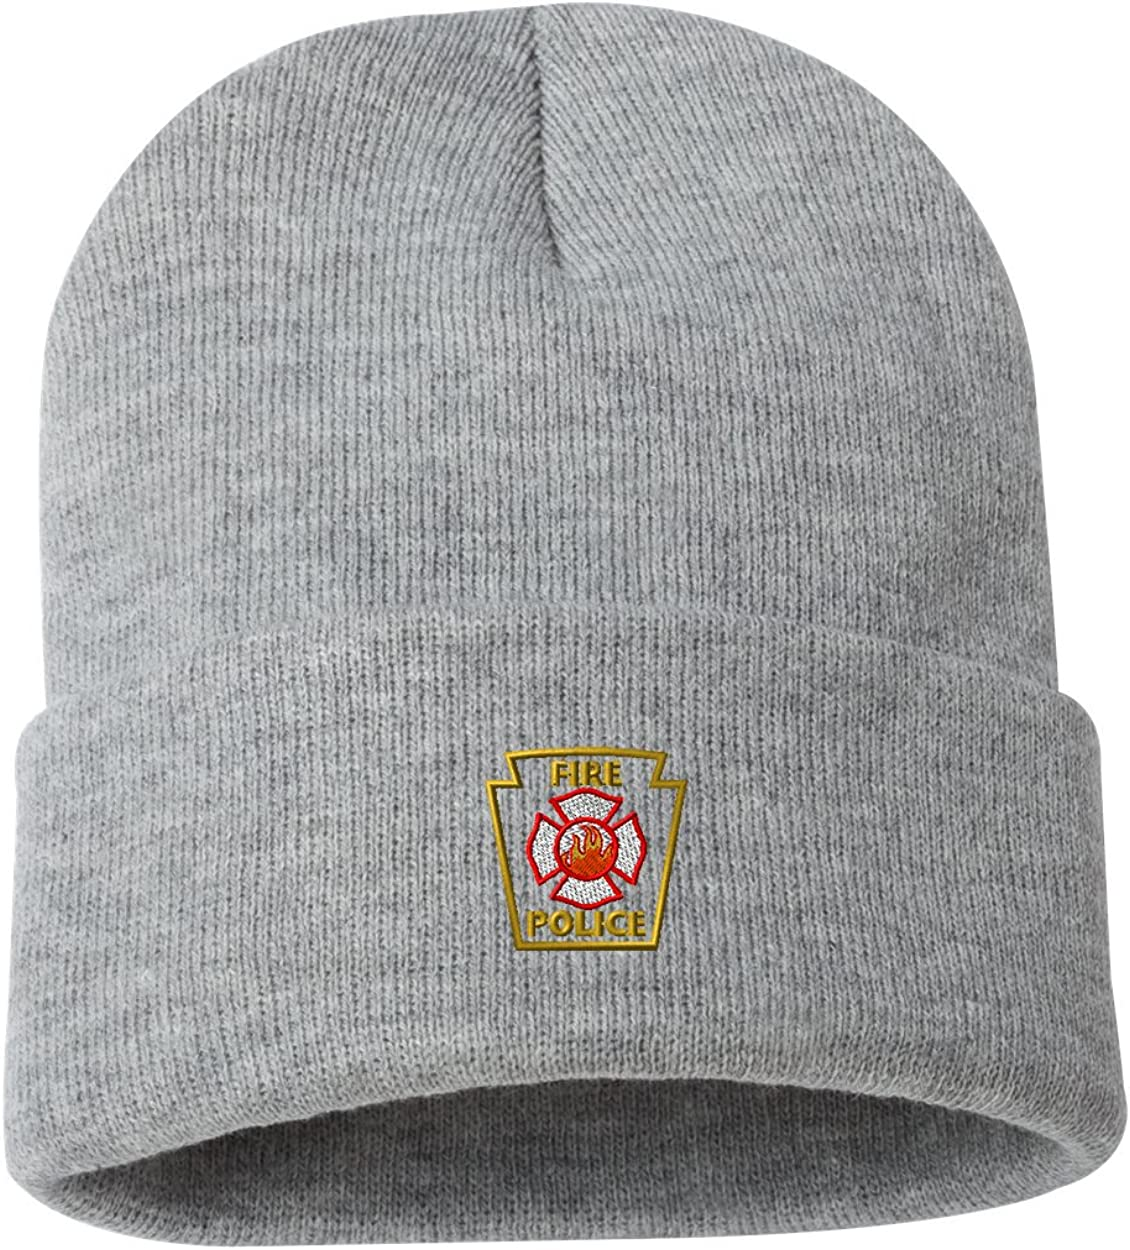 Fire Police Outline Custom Personalized Embroidery Embroidered Beanie